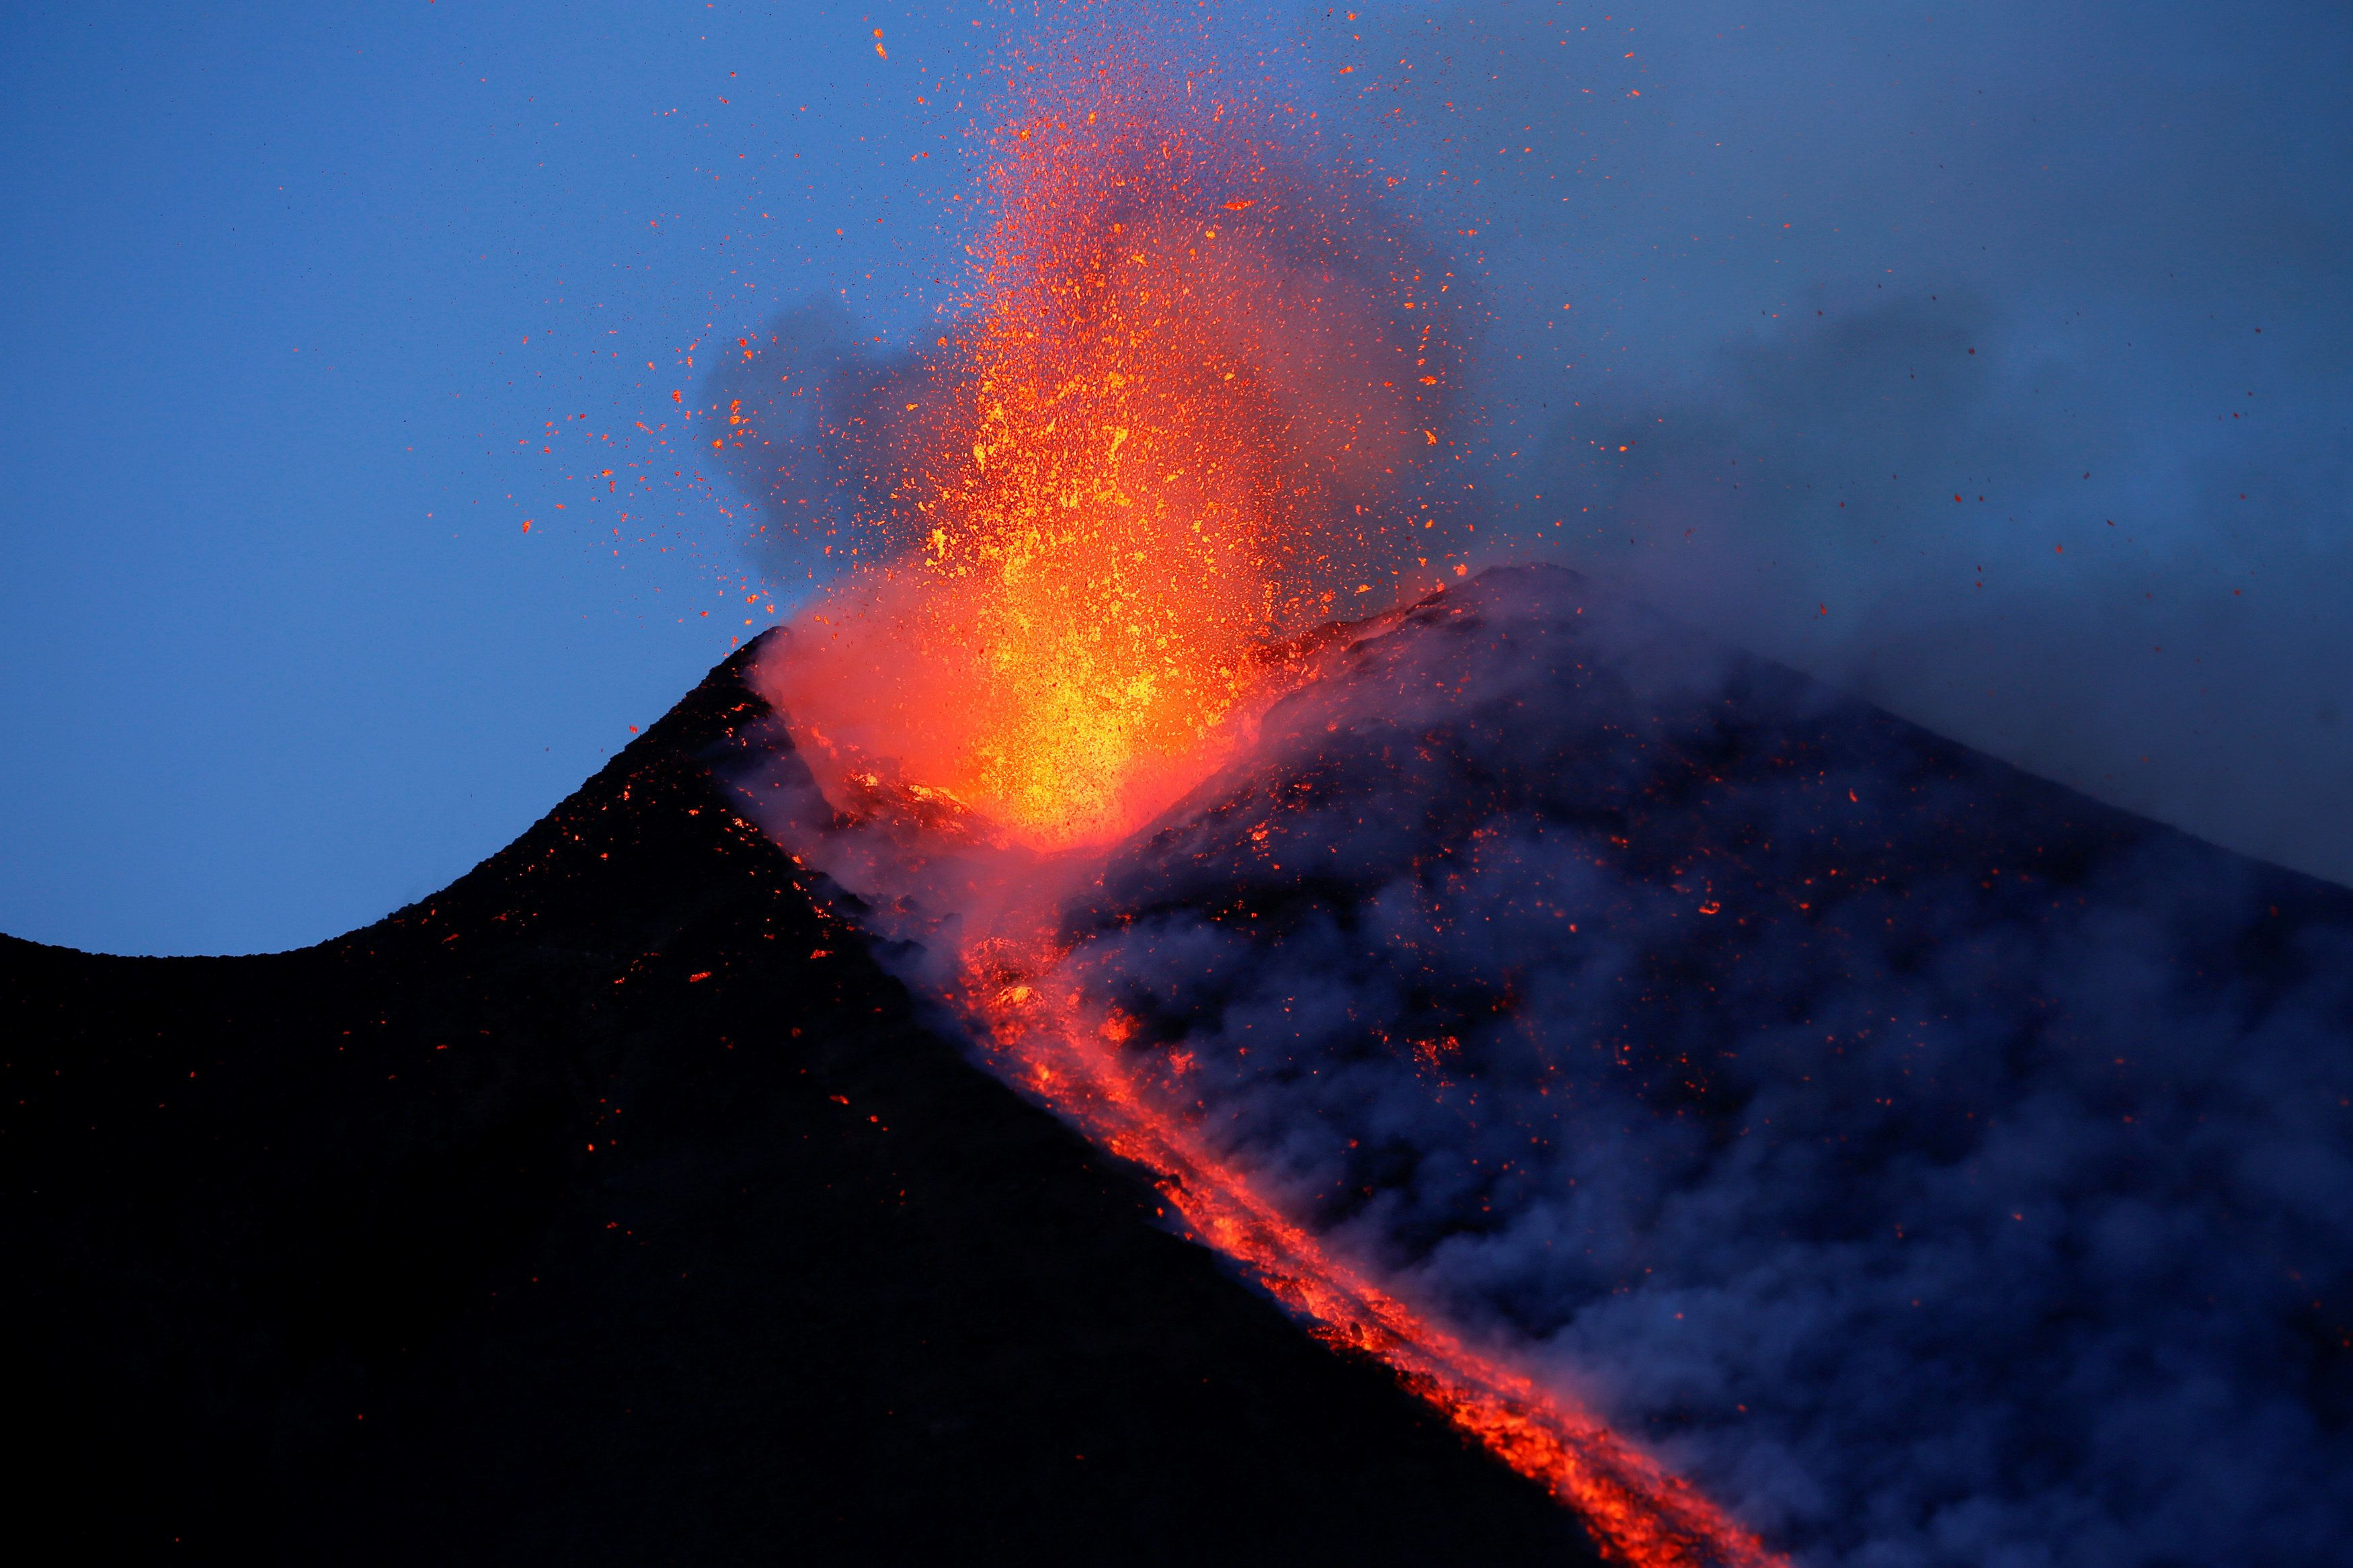 BBC News Crew Caught In Mount Etna Explosion, Multiple People